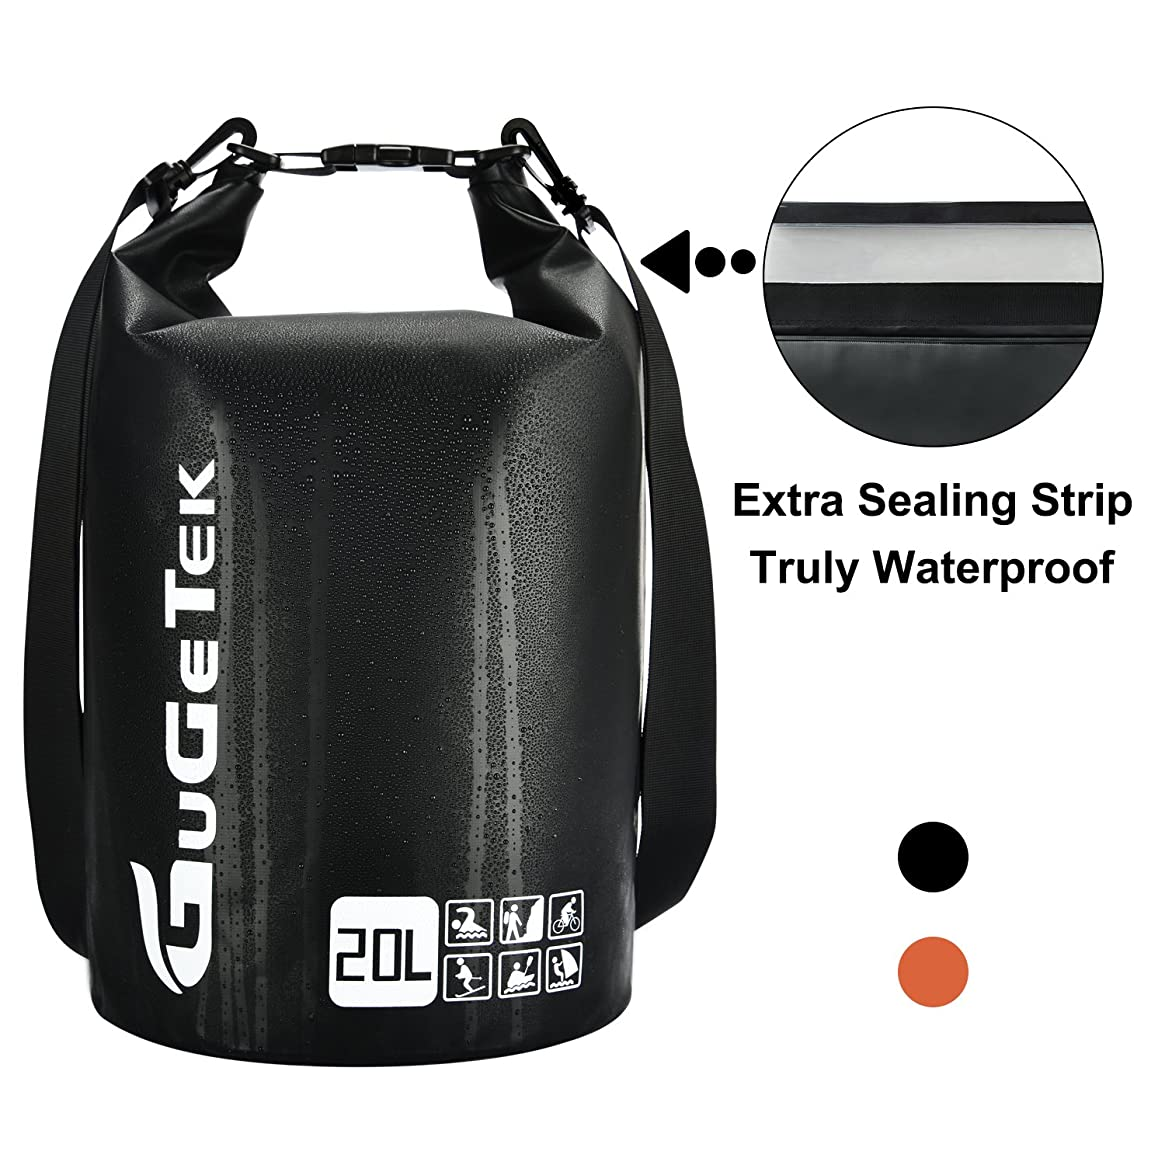 GuGeTek Waterproof Dry Bag Backpack 10L 20L Submersible Floating Roll Top Dry Compression Sack for Kayaking Beach Camping Hiking and Other Water Sports